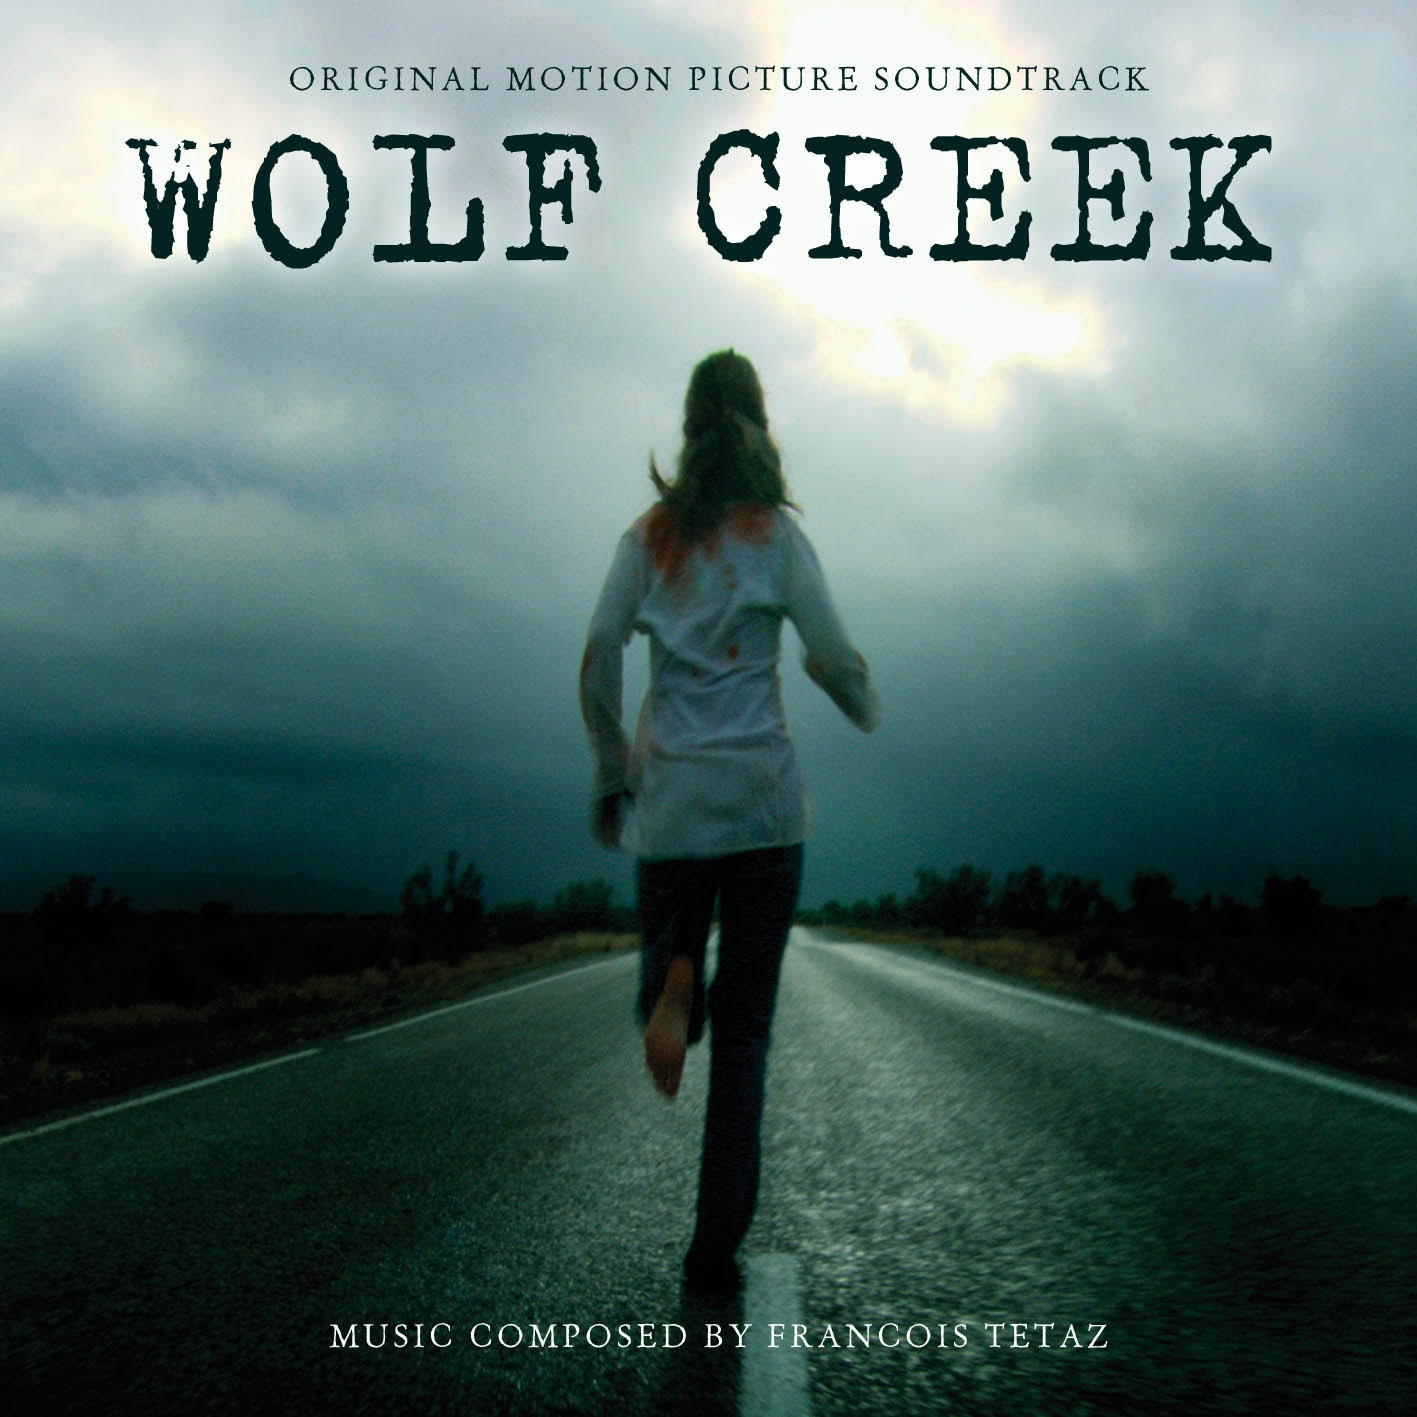 ORIGINAL SOUND TRACK: FRANCOIS TETAZ - WOLF CREEK